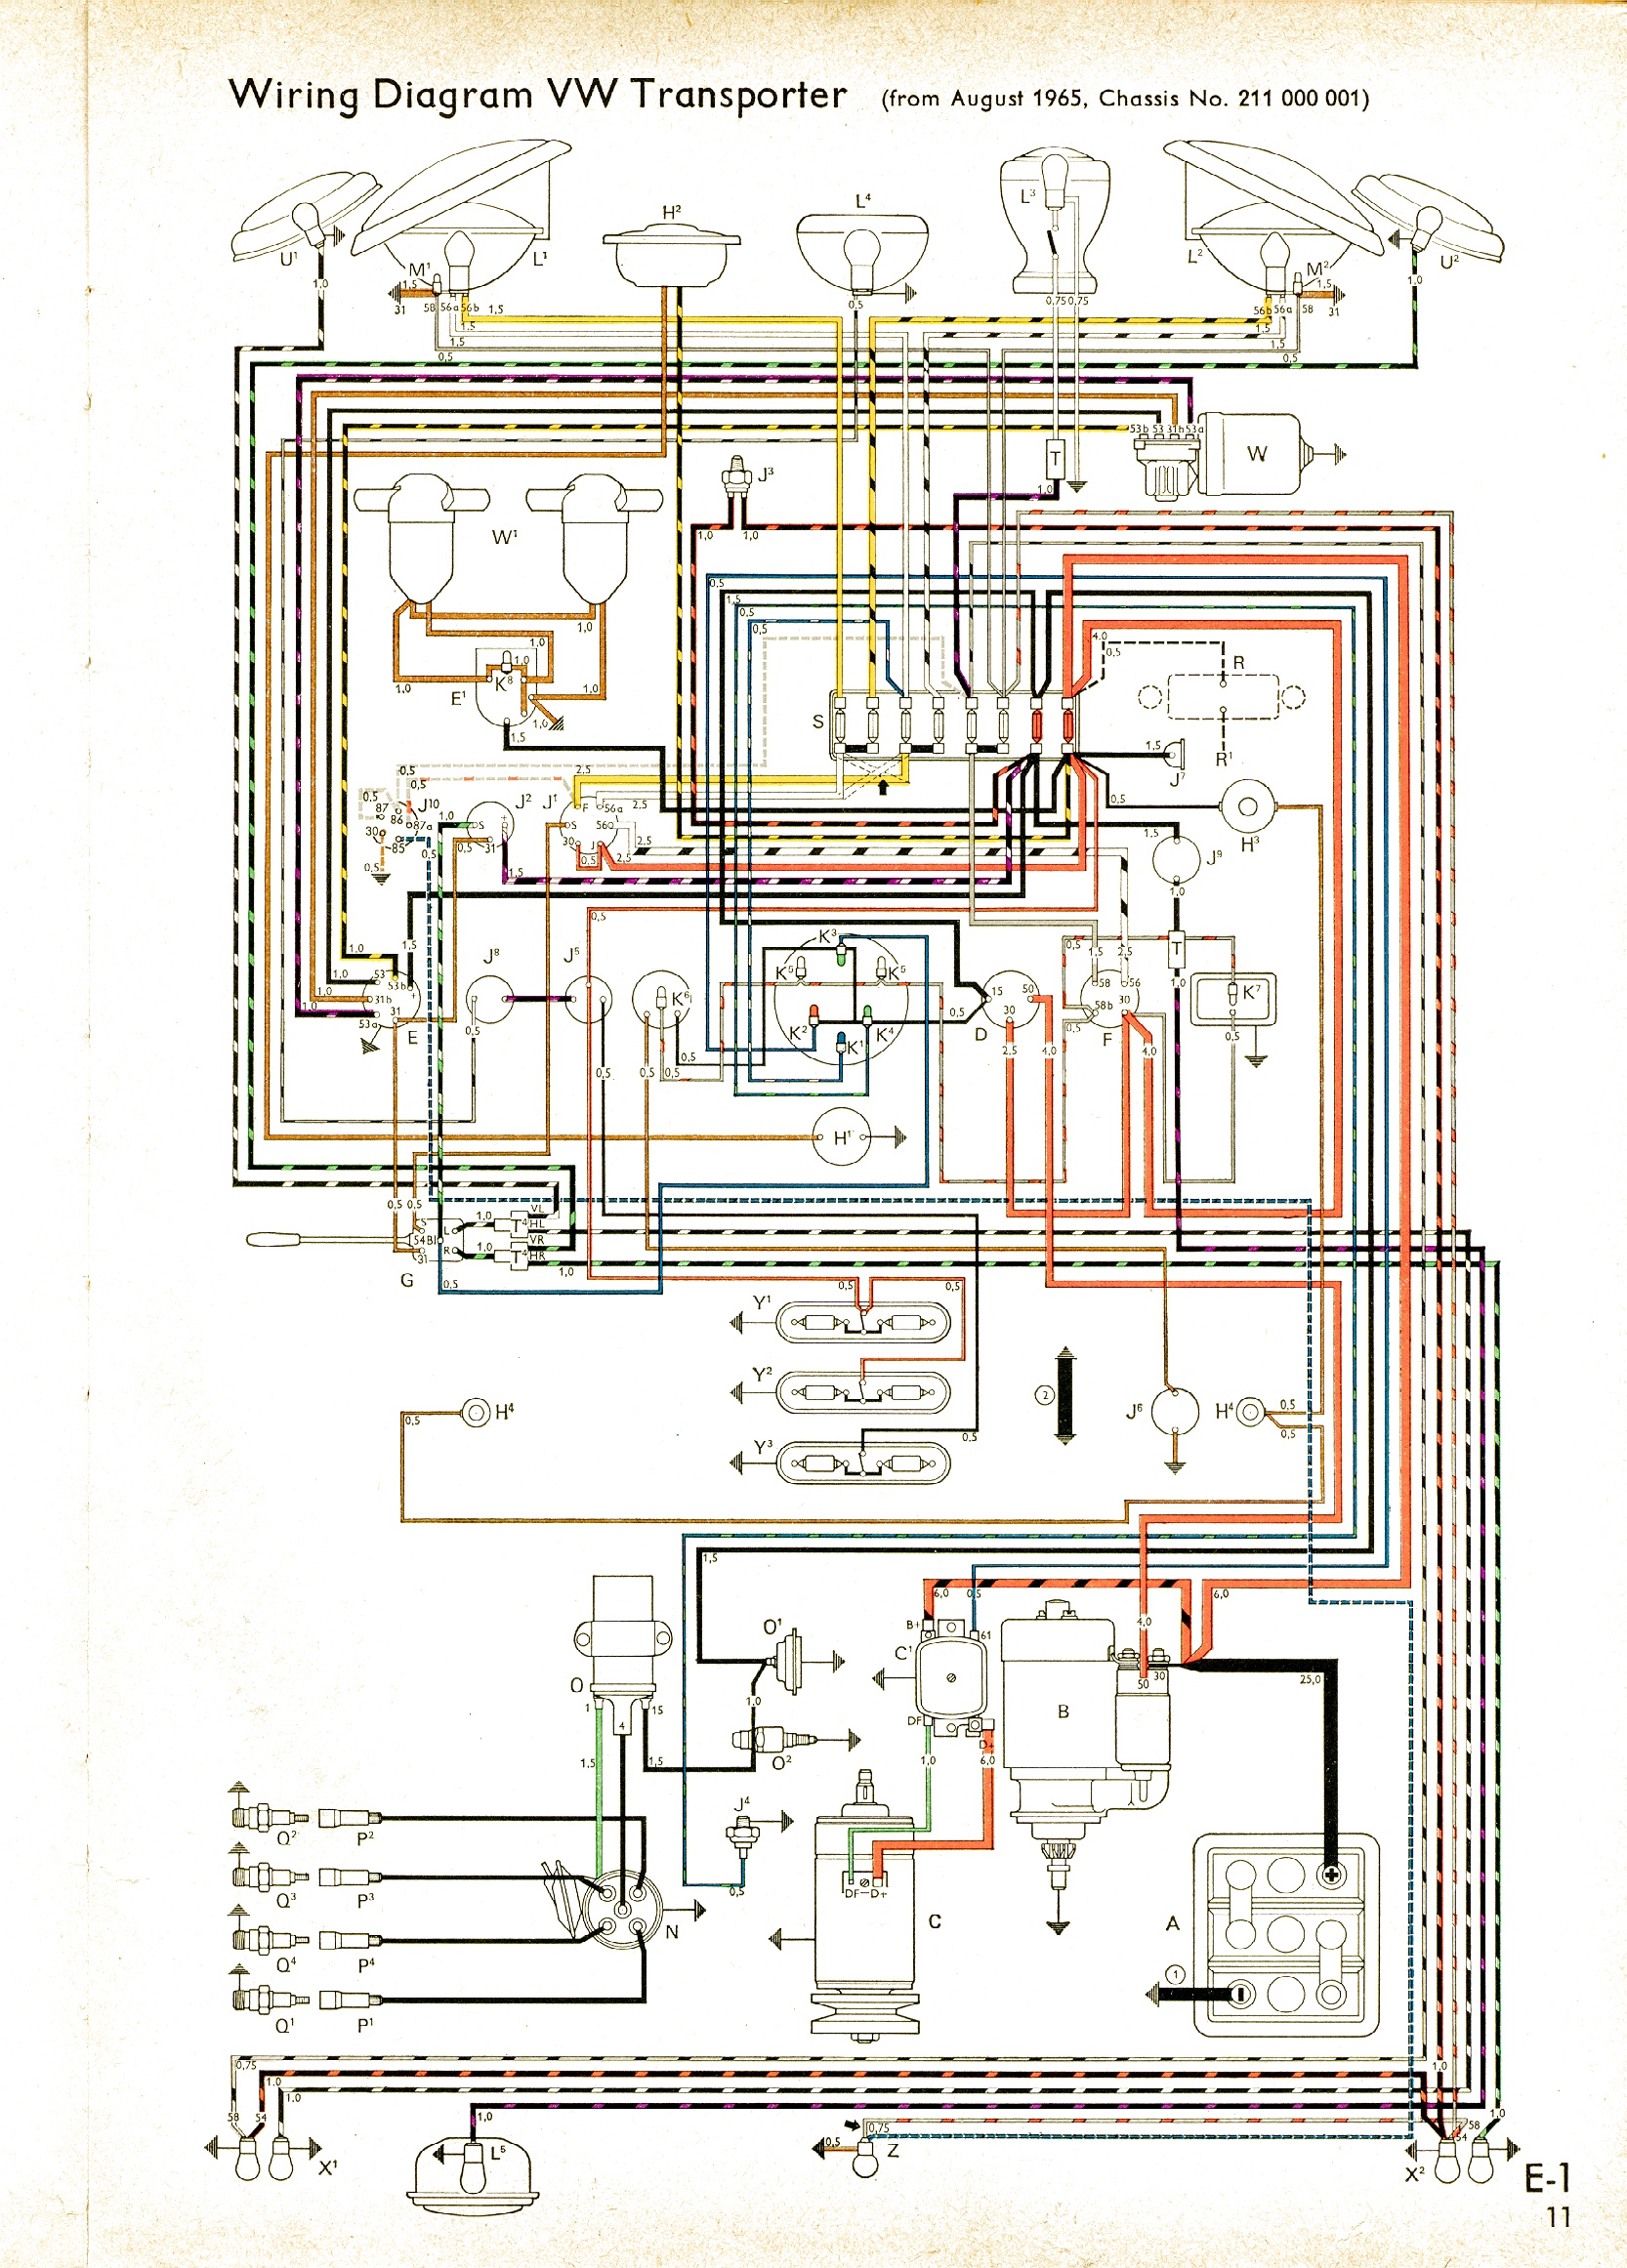 77 vw van wiring diagram wiring diagram experts